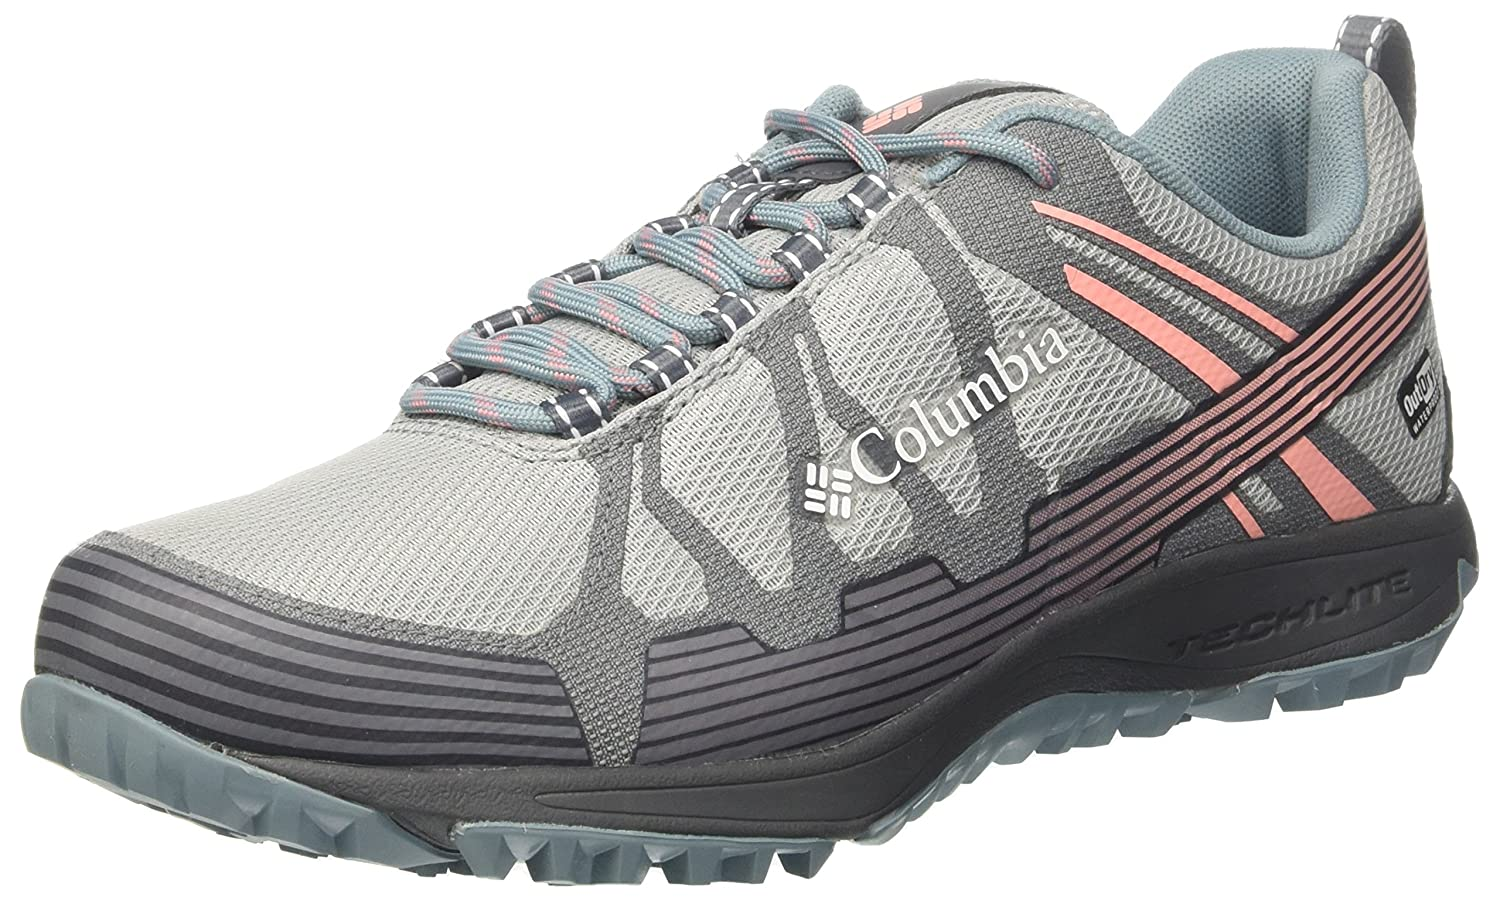 Columbia Femme Chaussures Multisport, Imperméable, Conspiracy V, Gris (Earl Grey, Sorbet), Pointure : 39.5